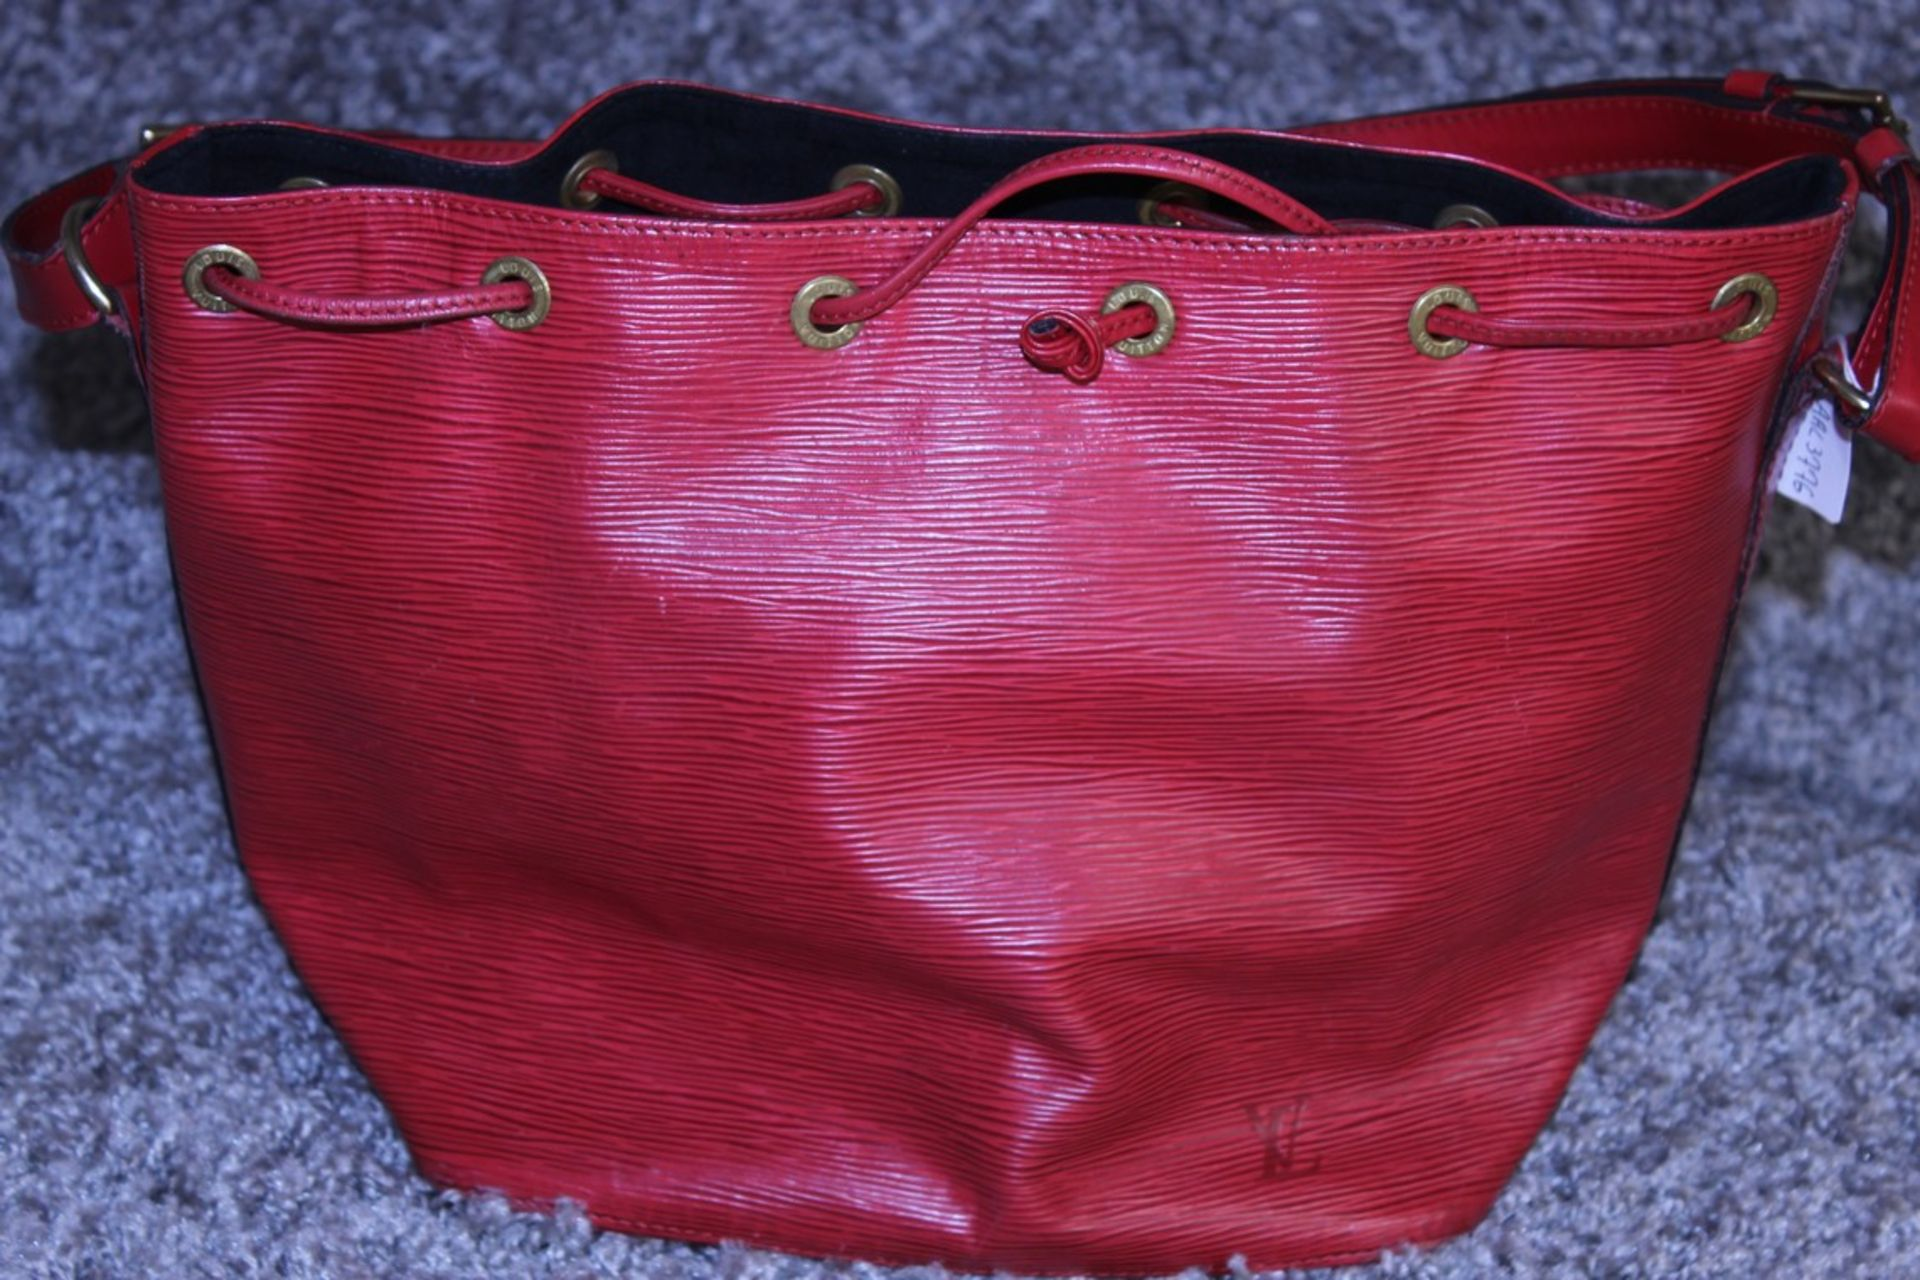 RRP £925 Louis Vuitton Noe Shoulder Bag, Red Epi Calf Leather,Red Leather Handles, (Production